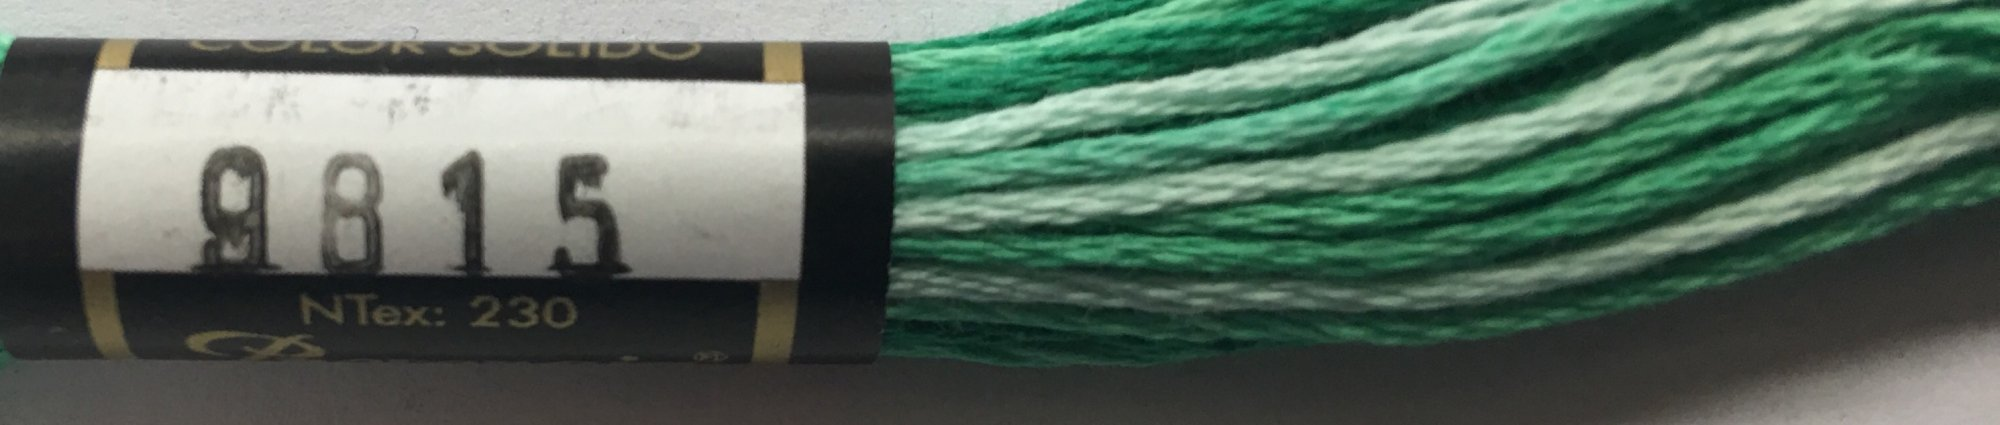 F9815 Presencia 100% Mercerized Finca Varigated Cotton 6 ply Embroidery Floss 8 meter skein